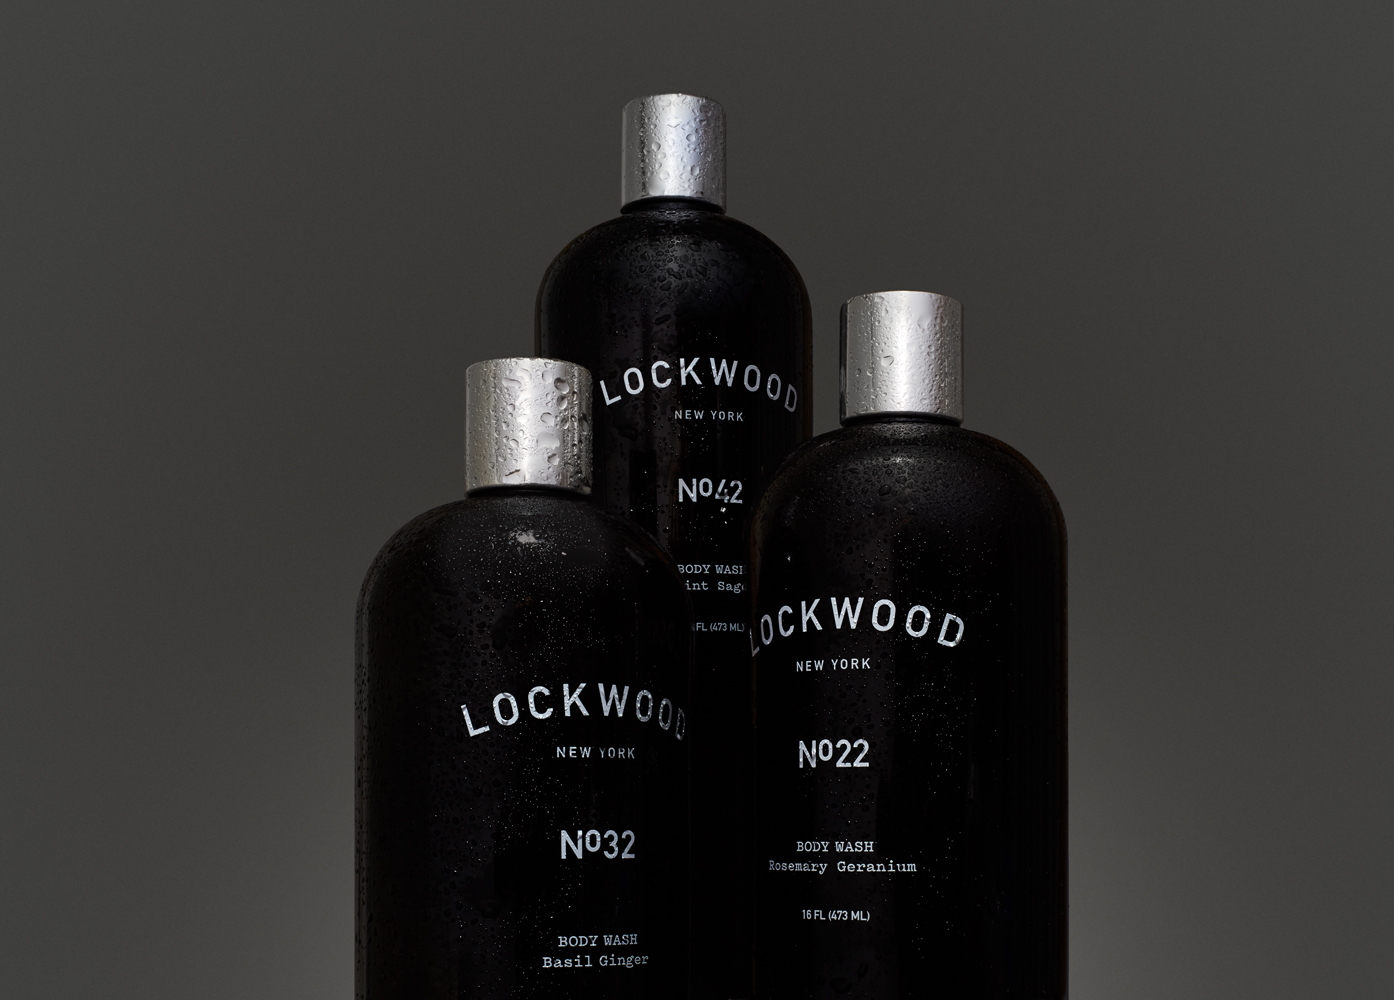 LOCKWOOD_SHOT-1_ROUND_02